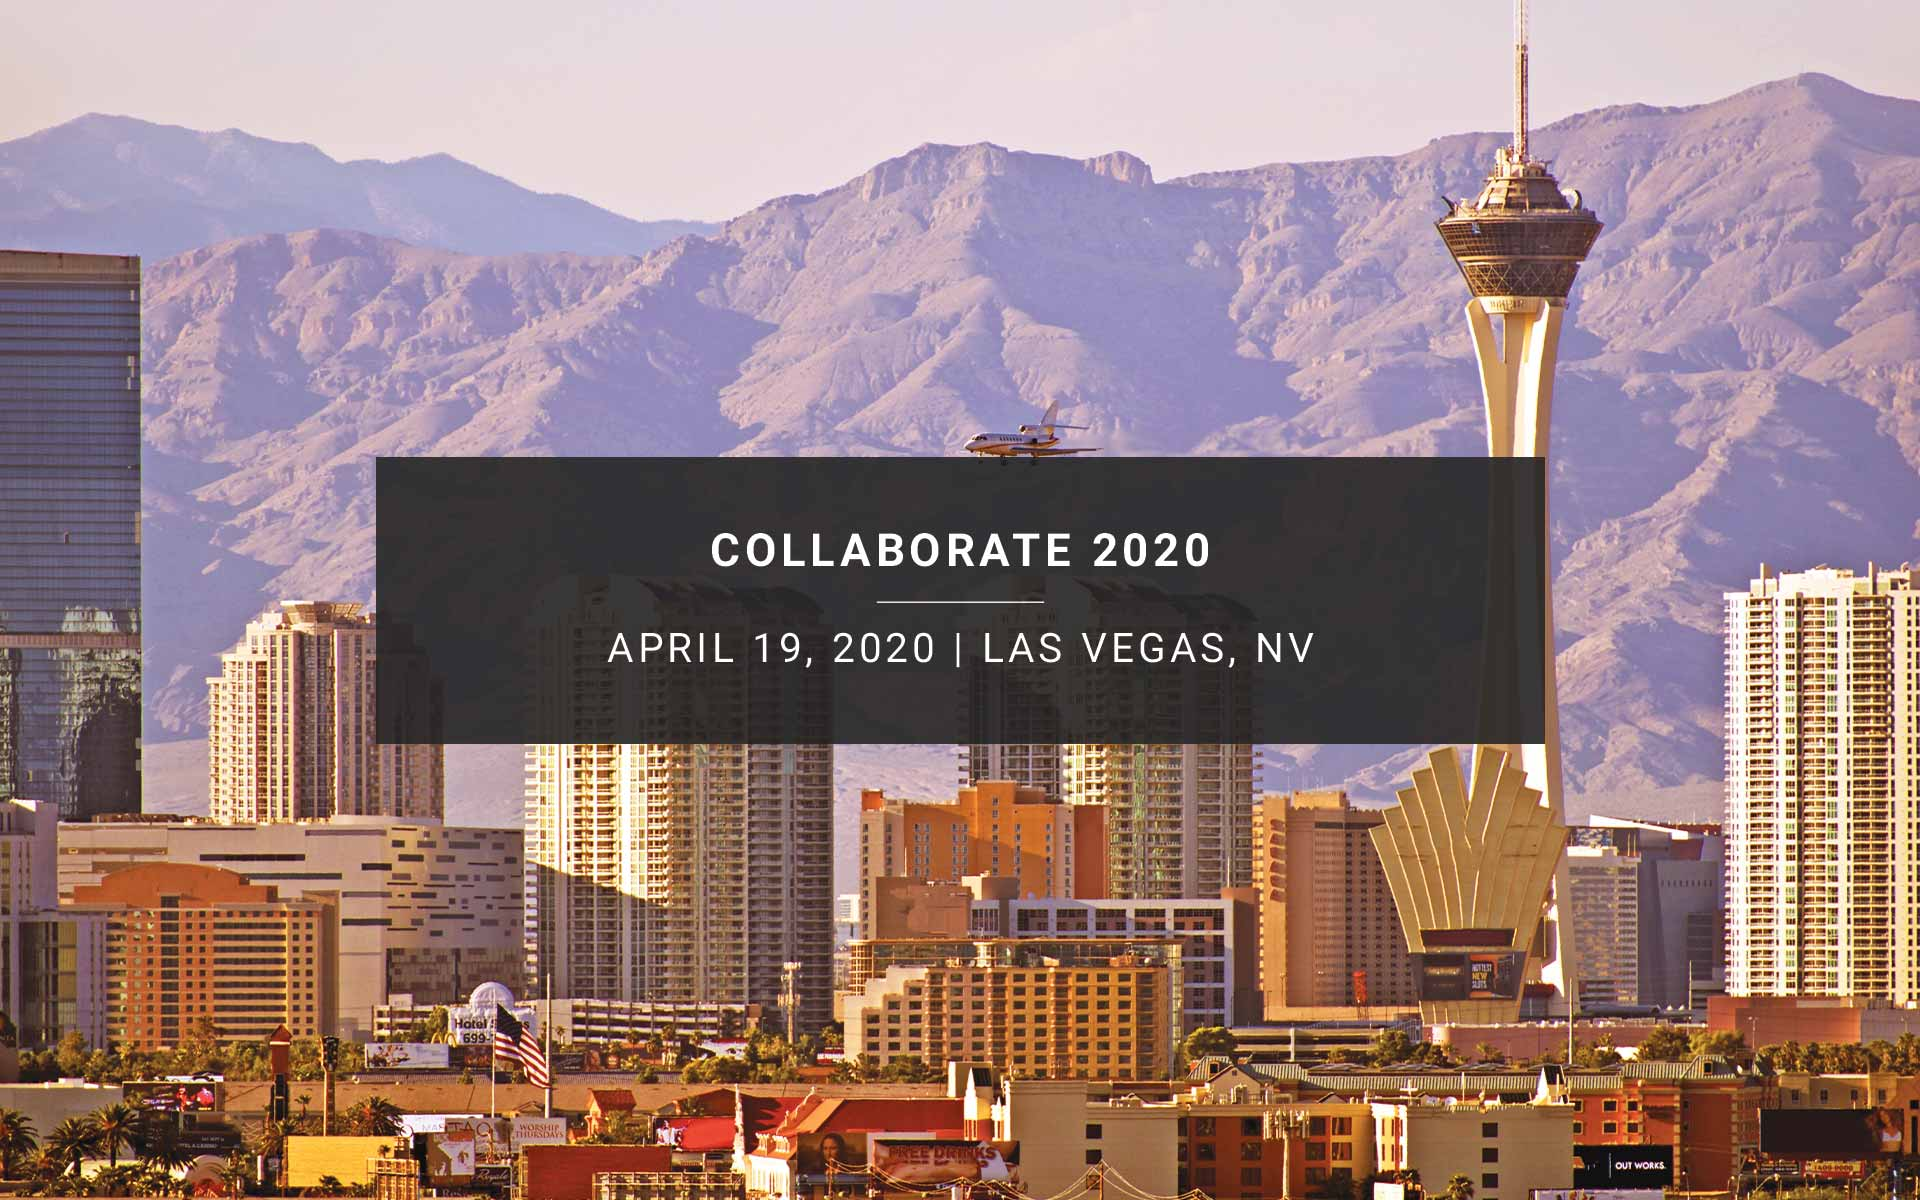 Collaborate 2020